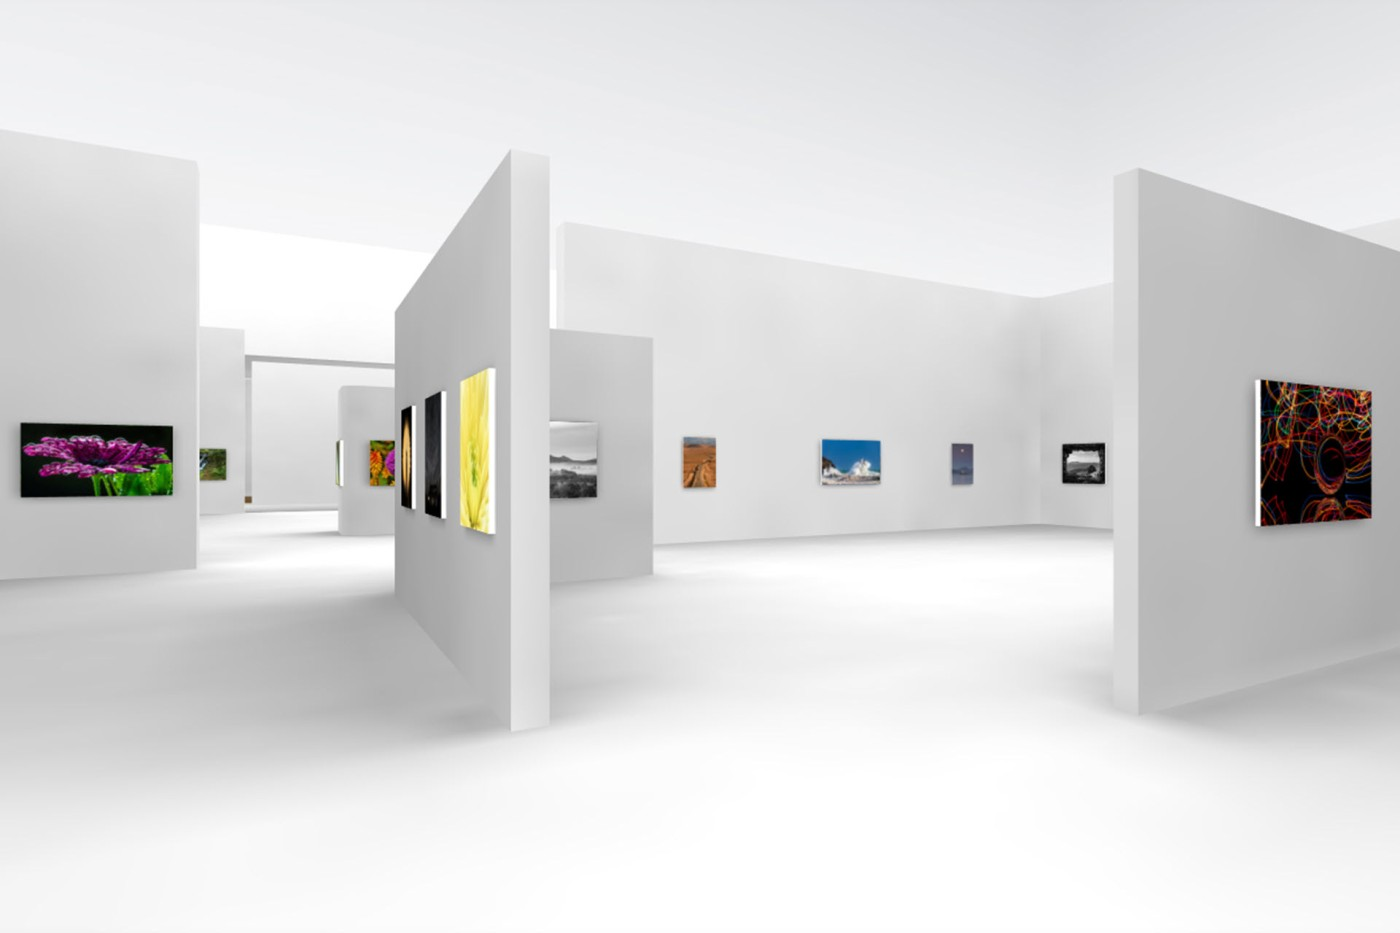 Killarney Camera Club 3D Virtual Exhibition